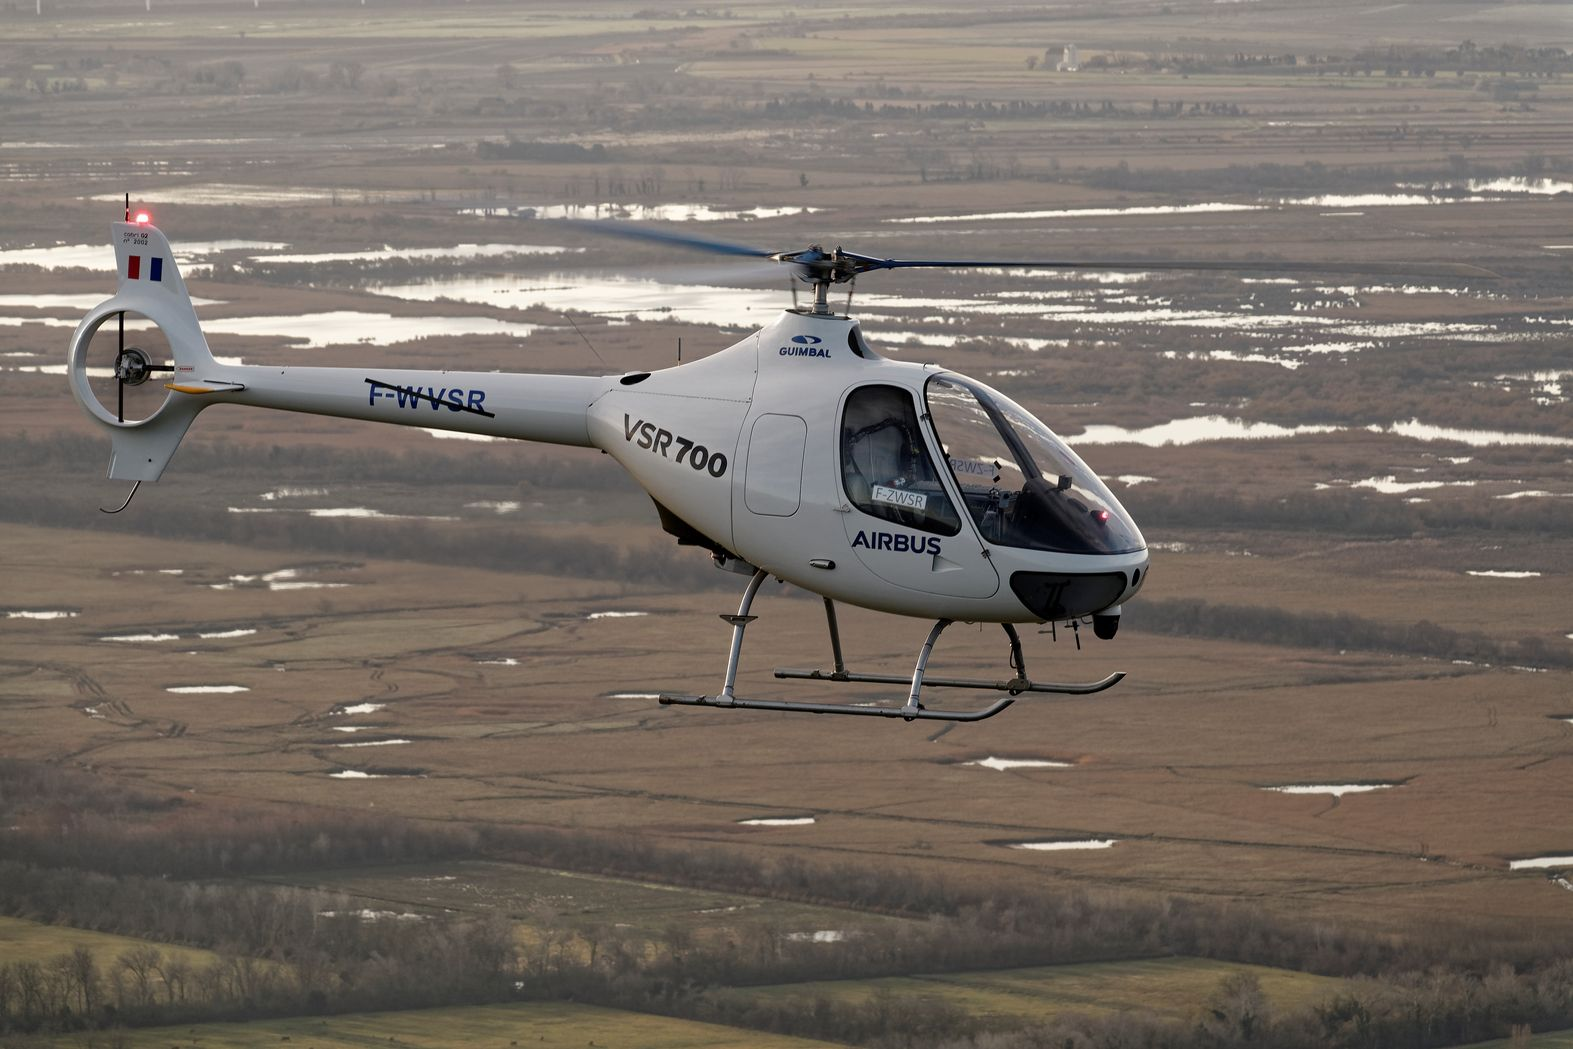 Helicopters Aircraft Charter Services Management Low Resolution The Airbus Vsr700 Demonstrator Took Off For A Fully Unmanned Autonomous Flight